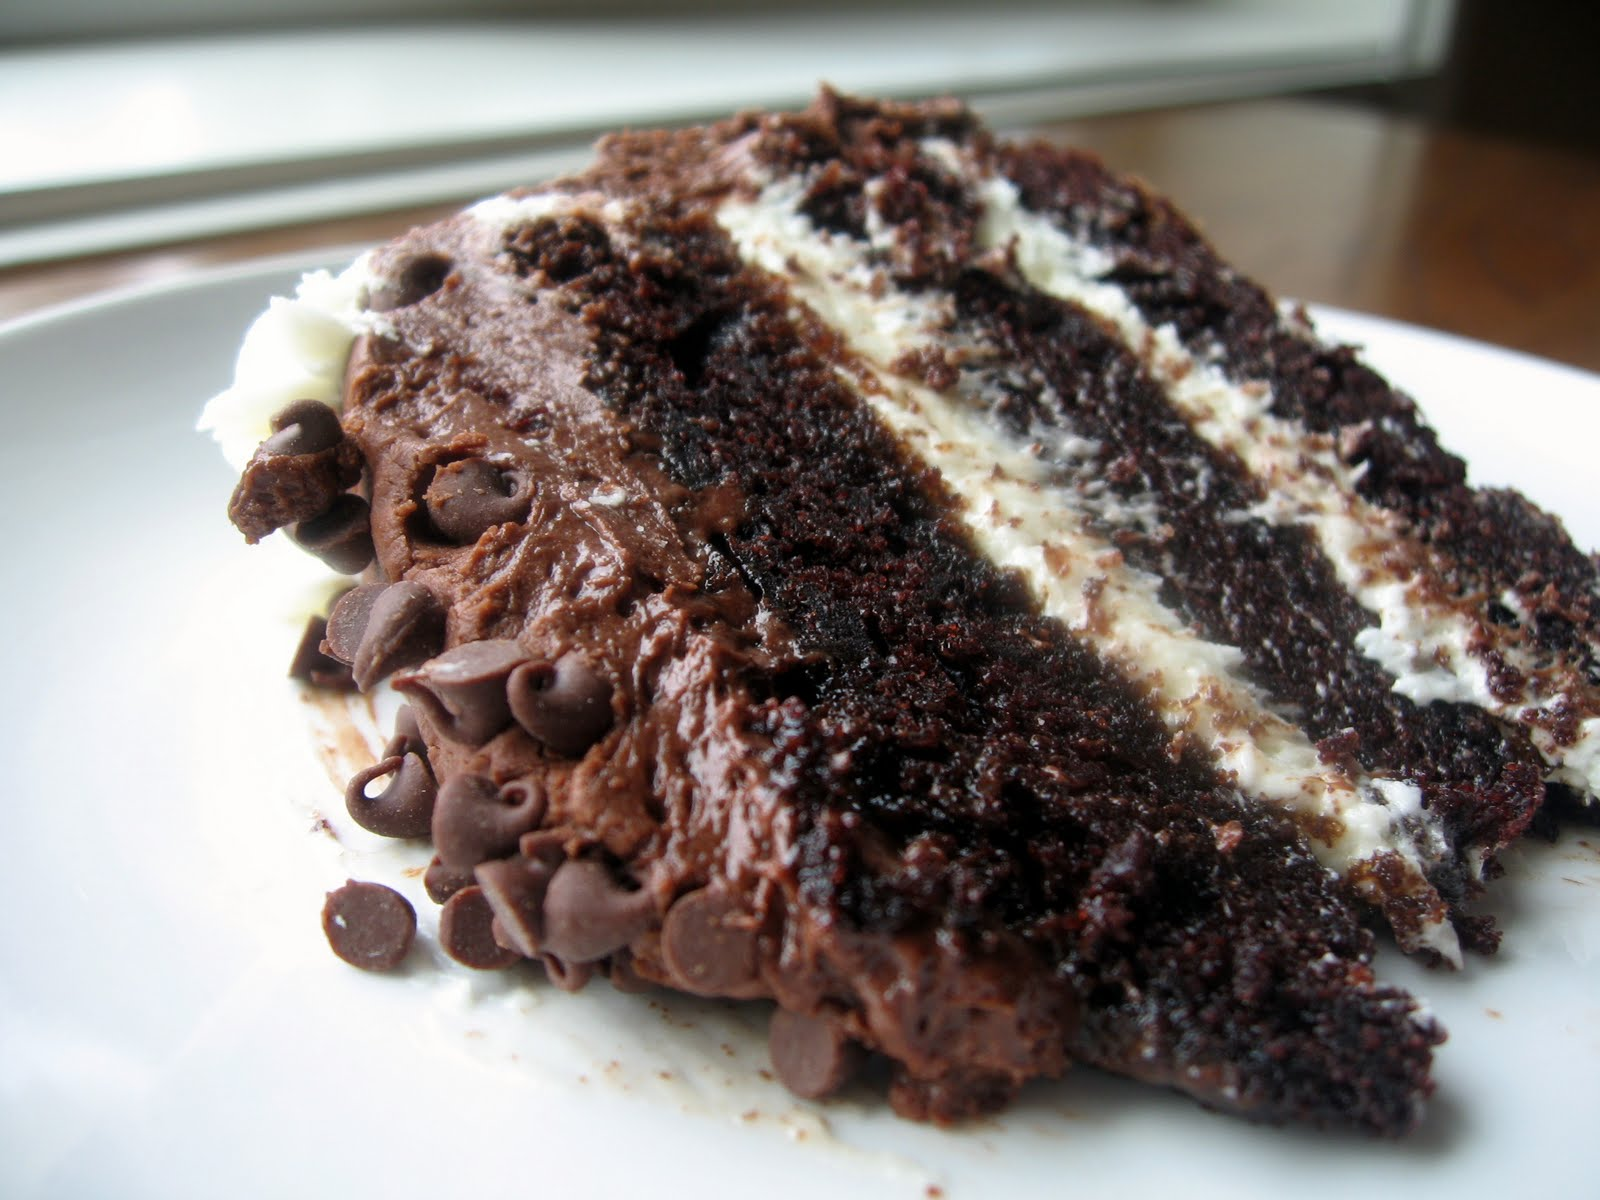 ... Chocolate Layer Cake with Cream Cheese Filling and Chocolate